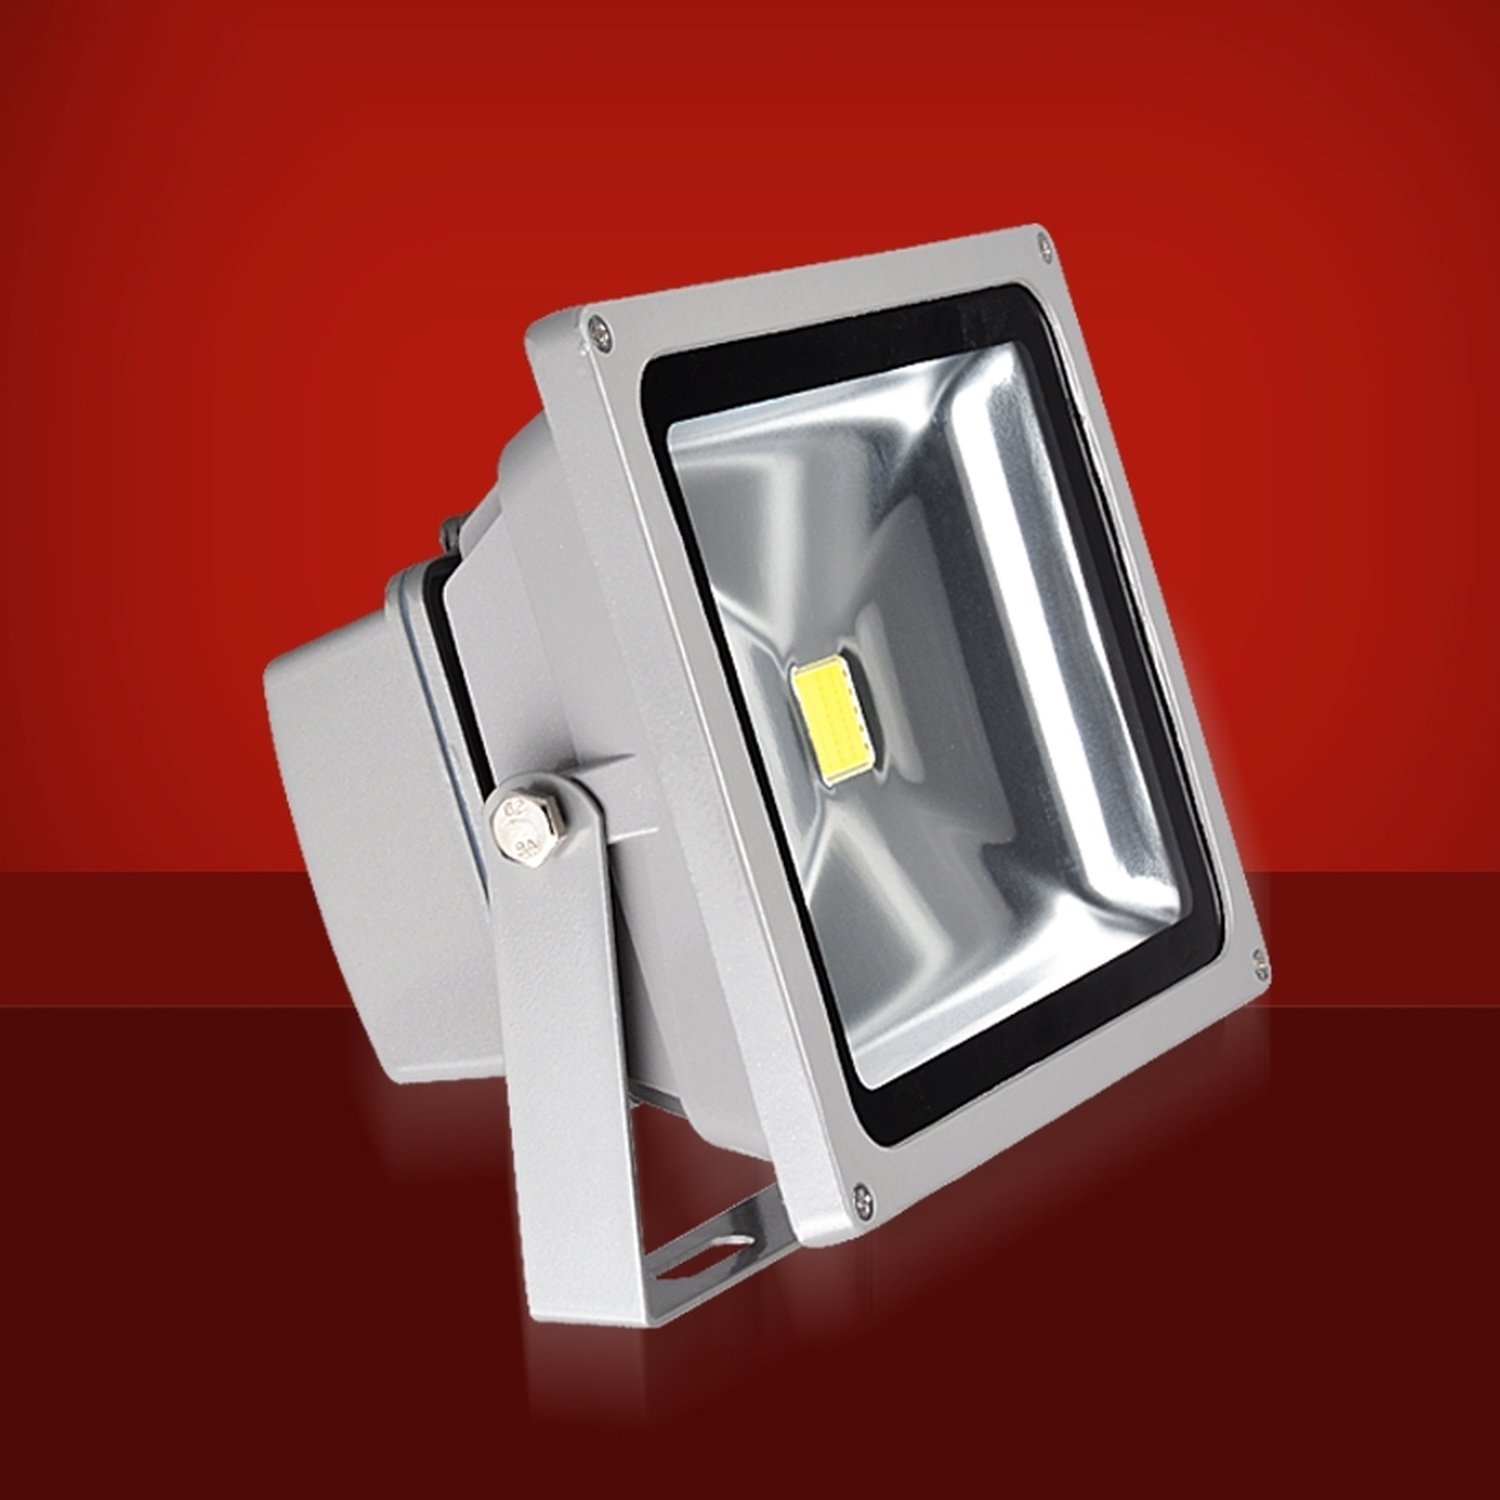 LED Spotlight Spotlight 10W 6000K Bright Light